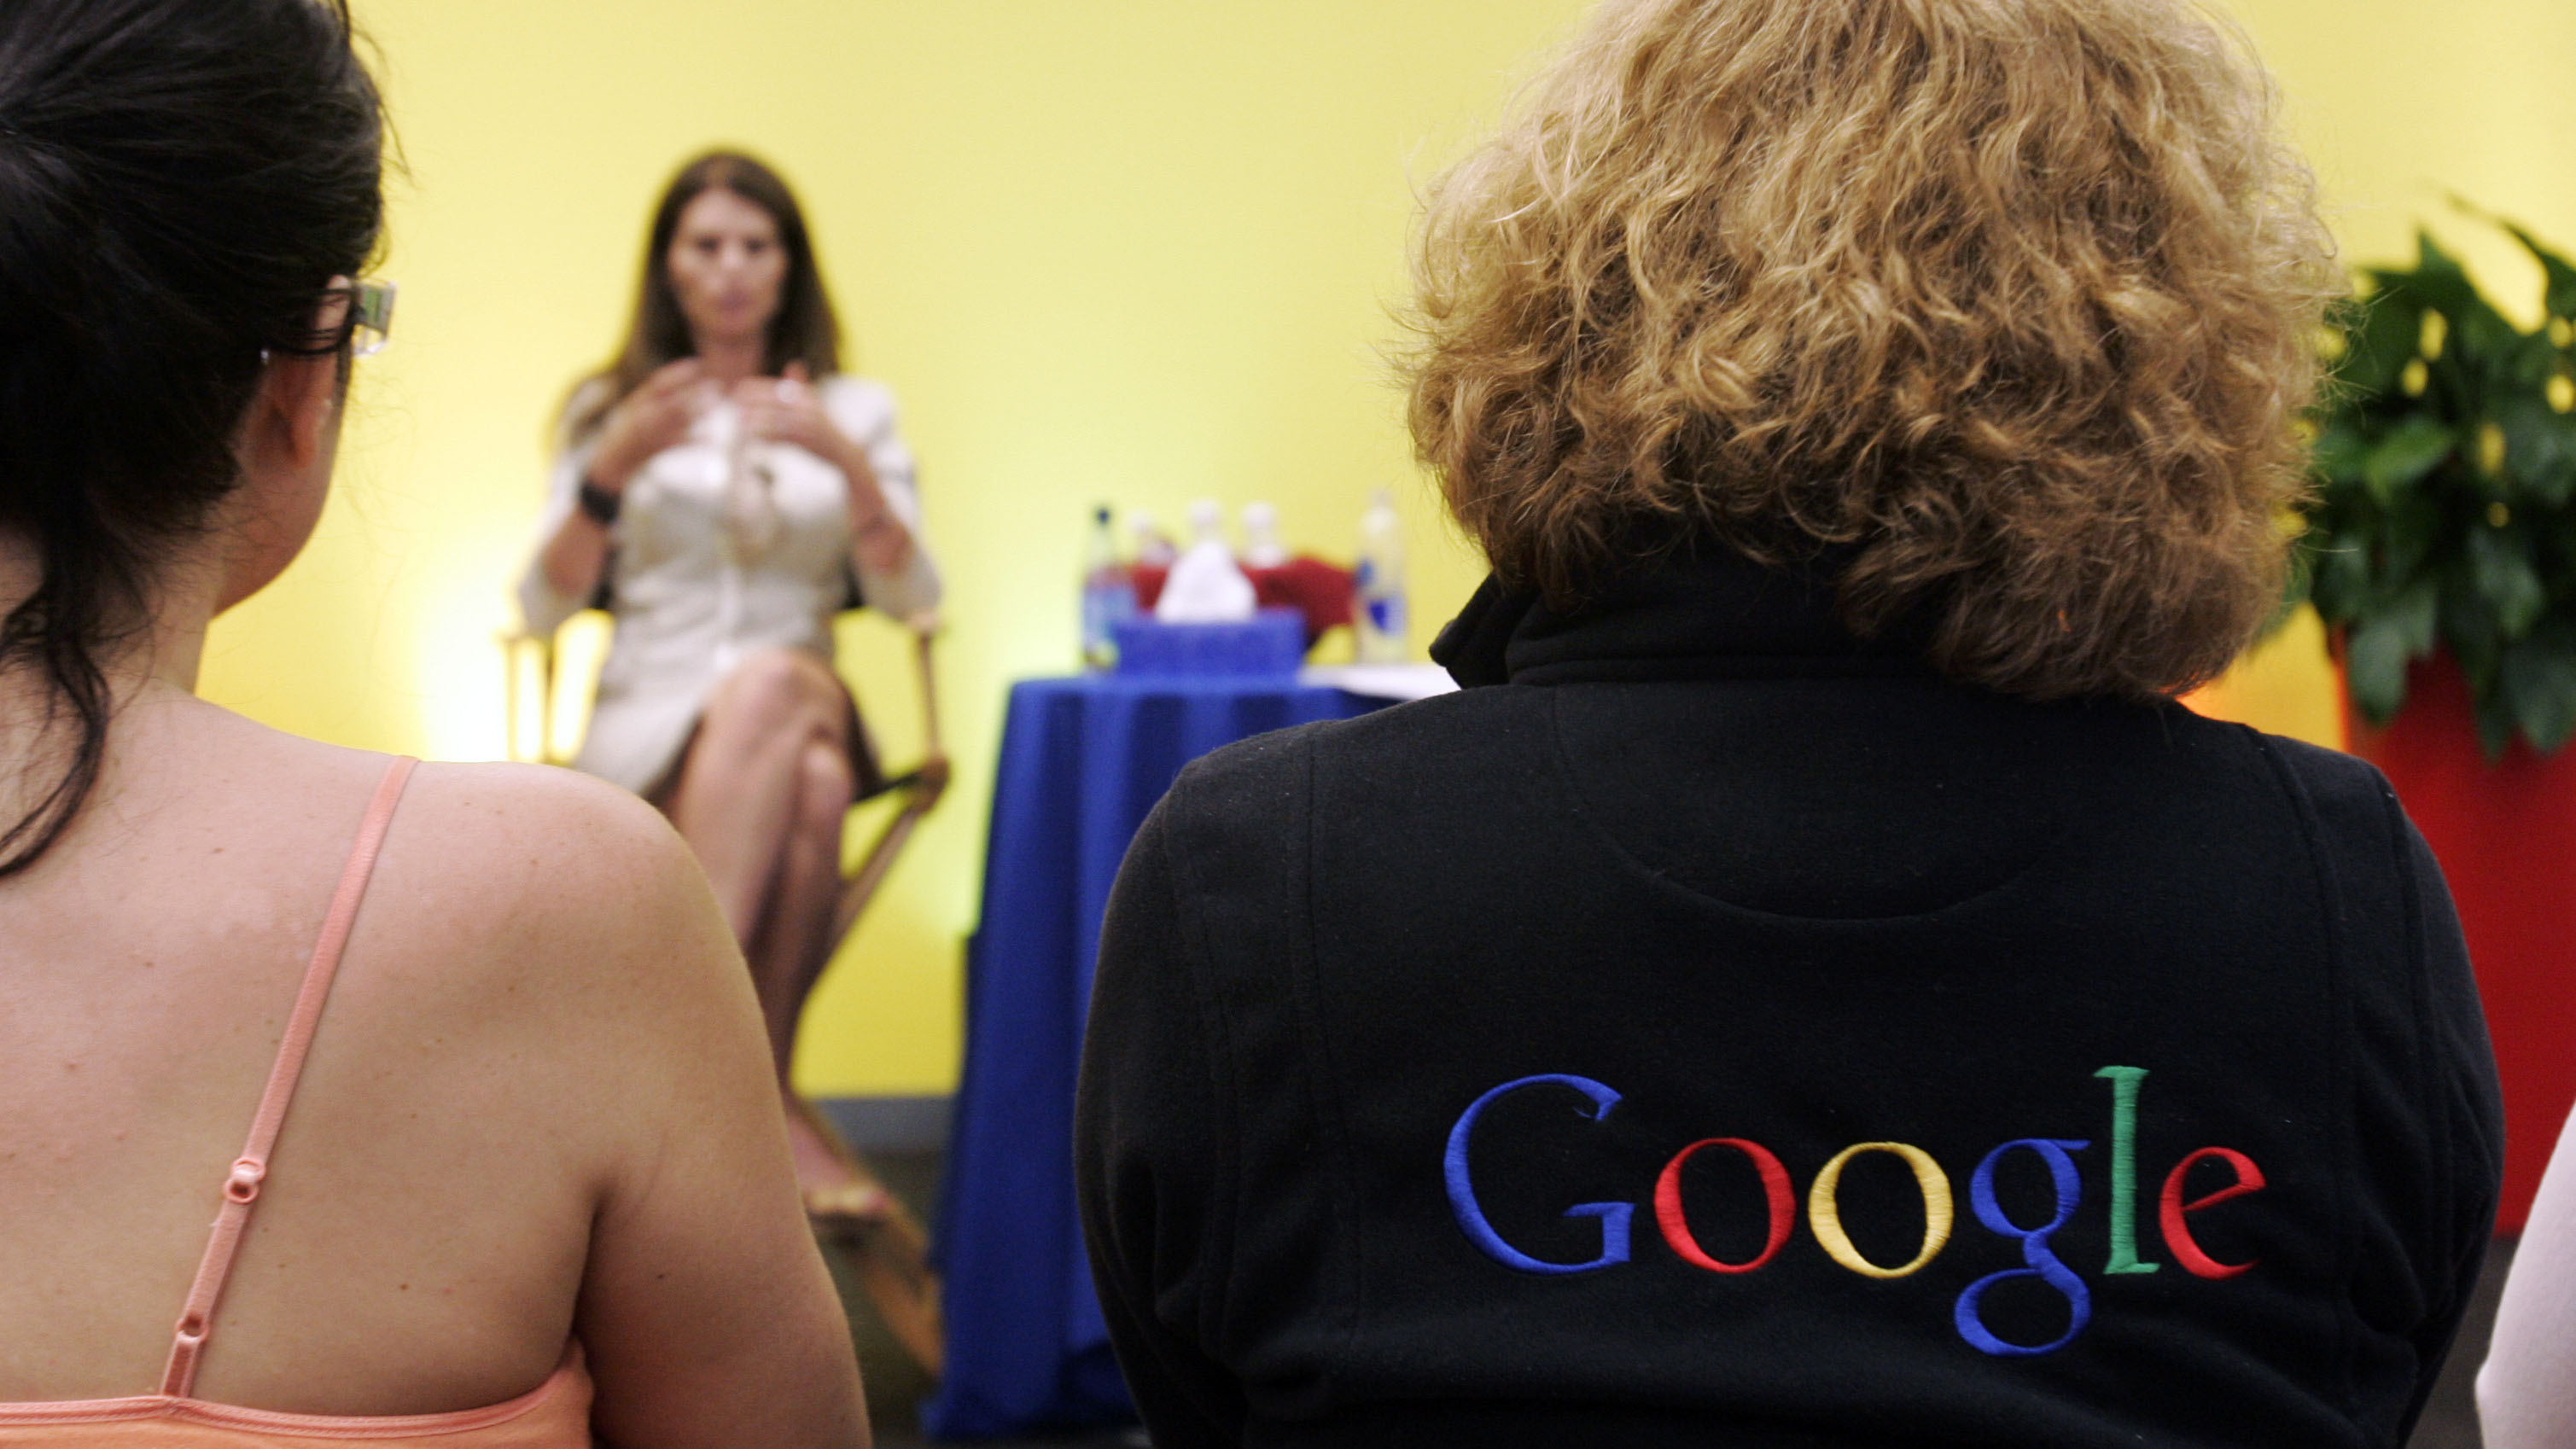 California First Lady Maria Shriver, center, gestures as she talks to a crowd of Google workers at Google headquarters in Mountain View, Calif., Tuesday, May 15, 2007. Shriver was part of the Women@Google Speaker Series that features female leaders. (AP Photo/Paul Sakuma)